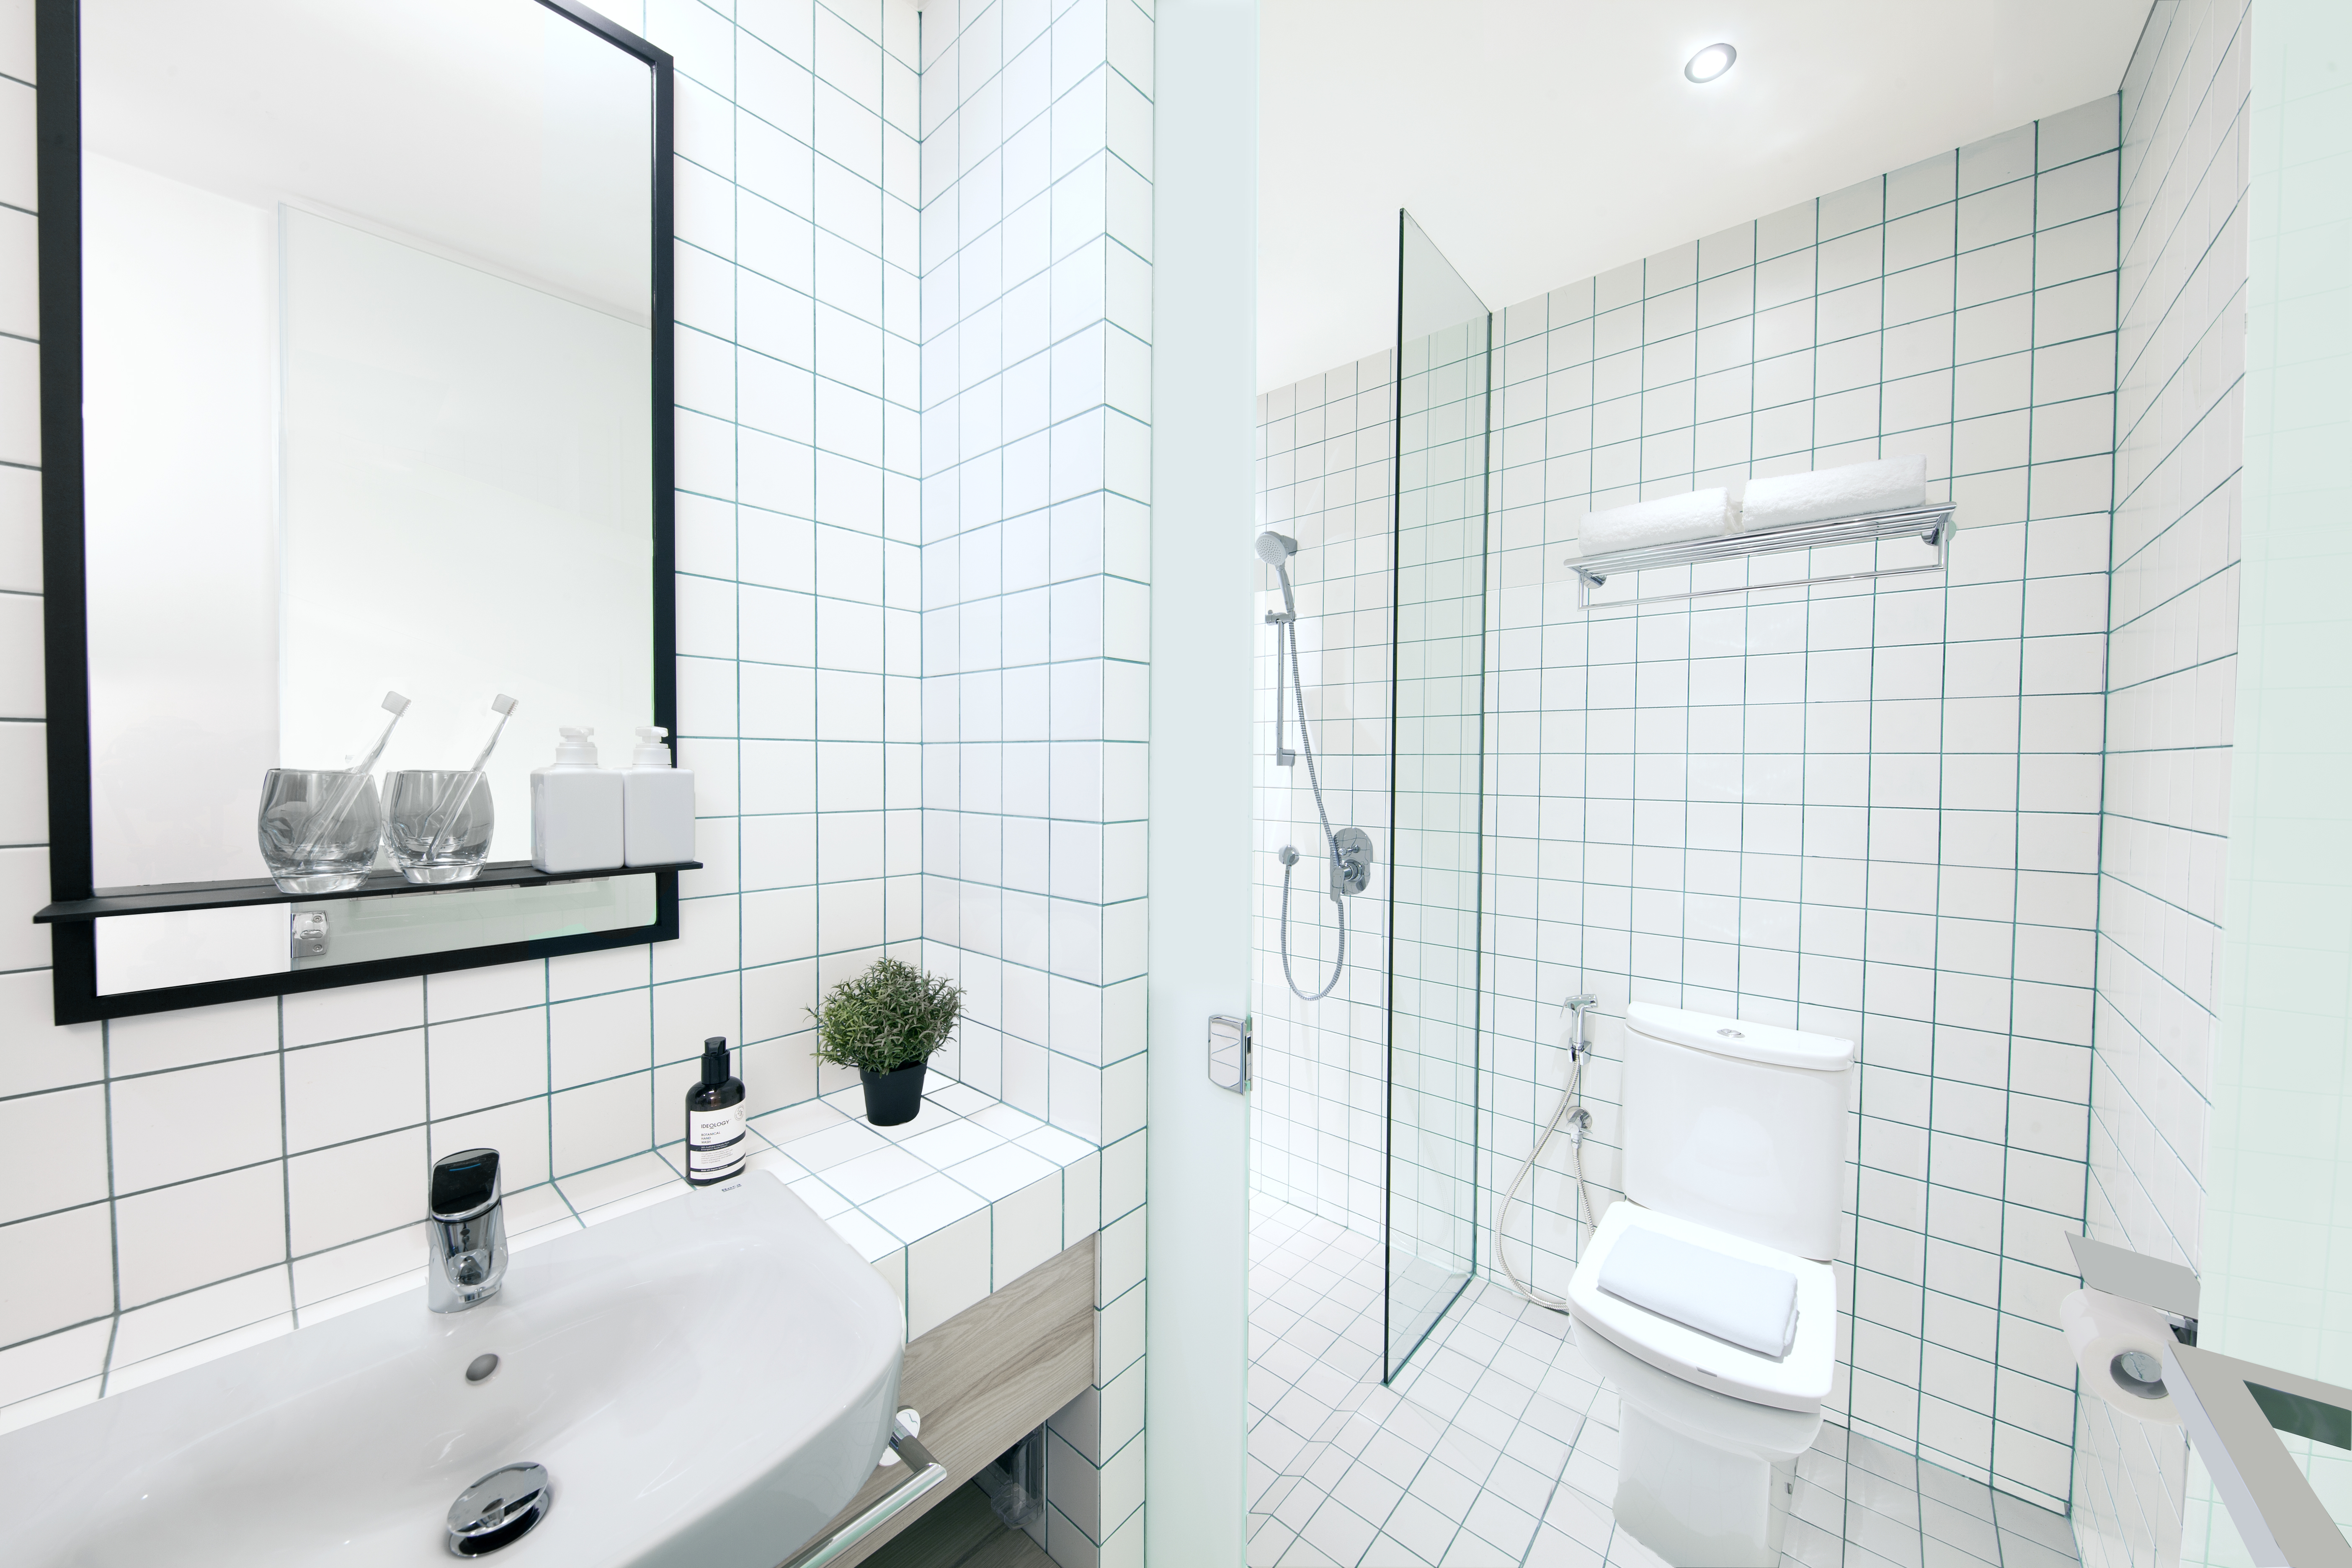 Bathroom area of lyf Style (Studio) apartment at lyf Funan Singapore